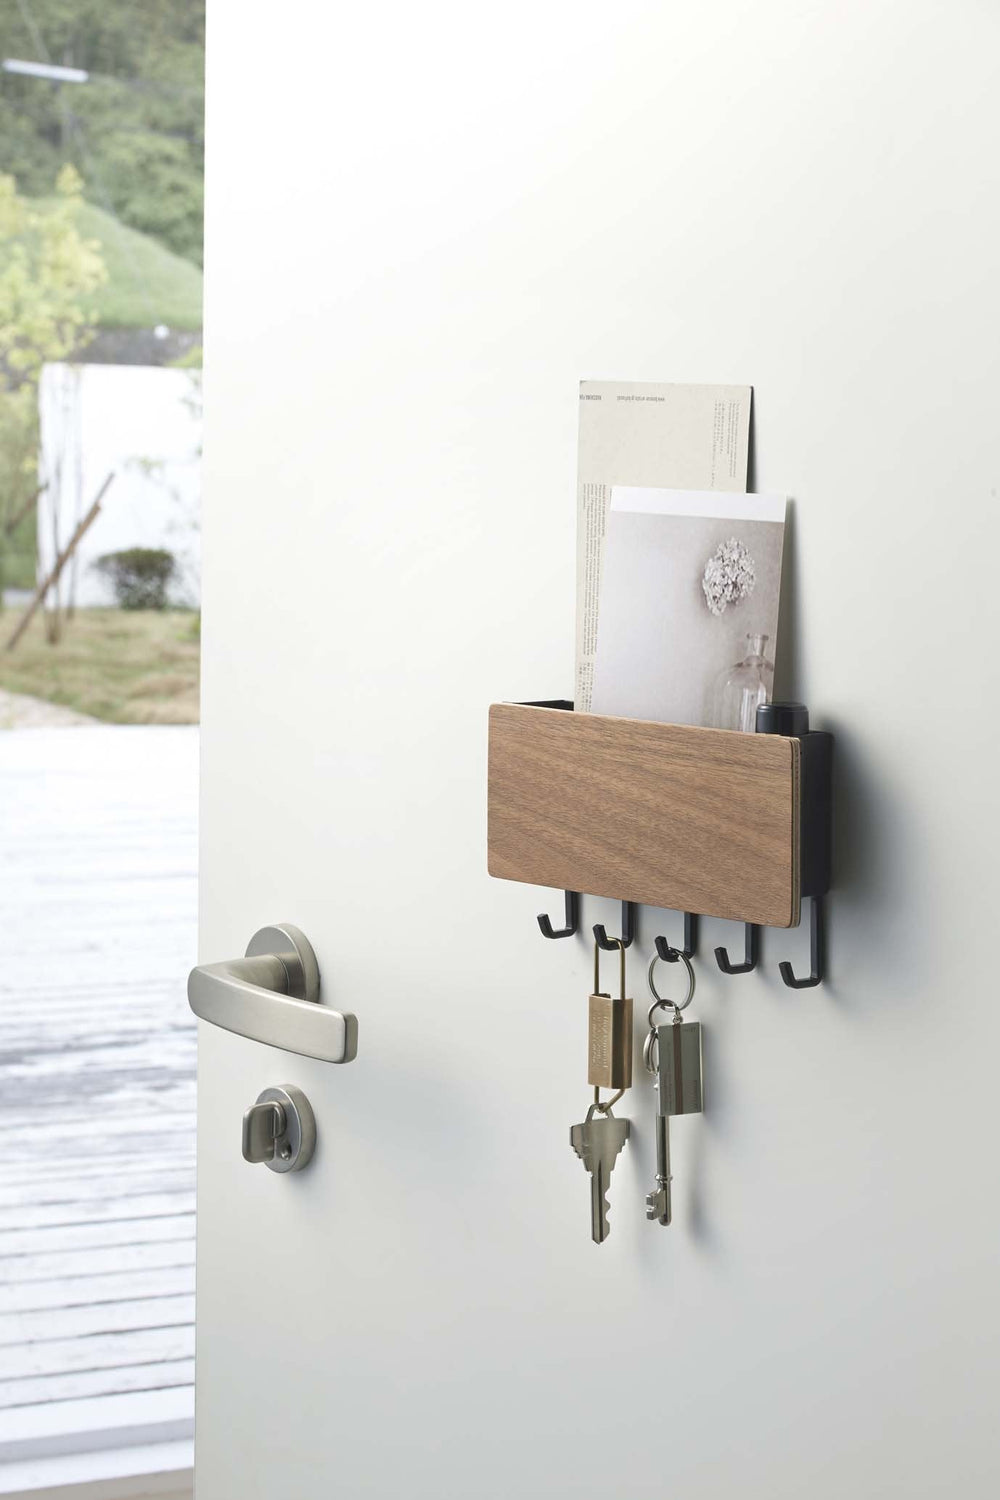 Yamazaki's magnetic key rack with wood front panel and five hooks holding mail and keys.